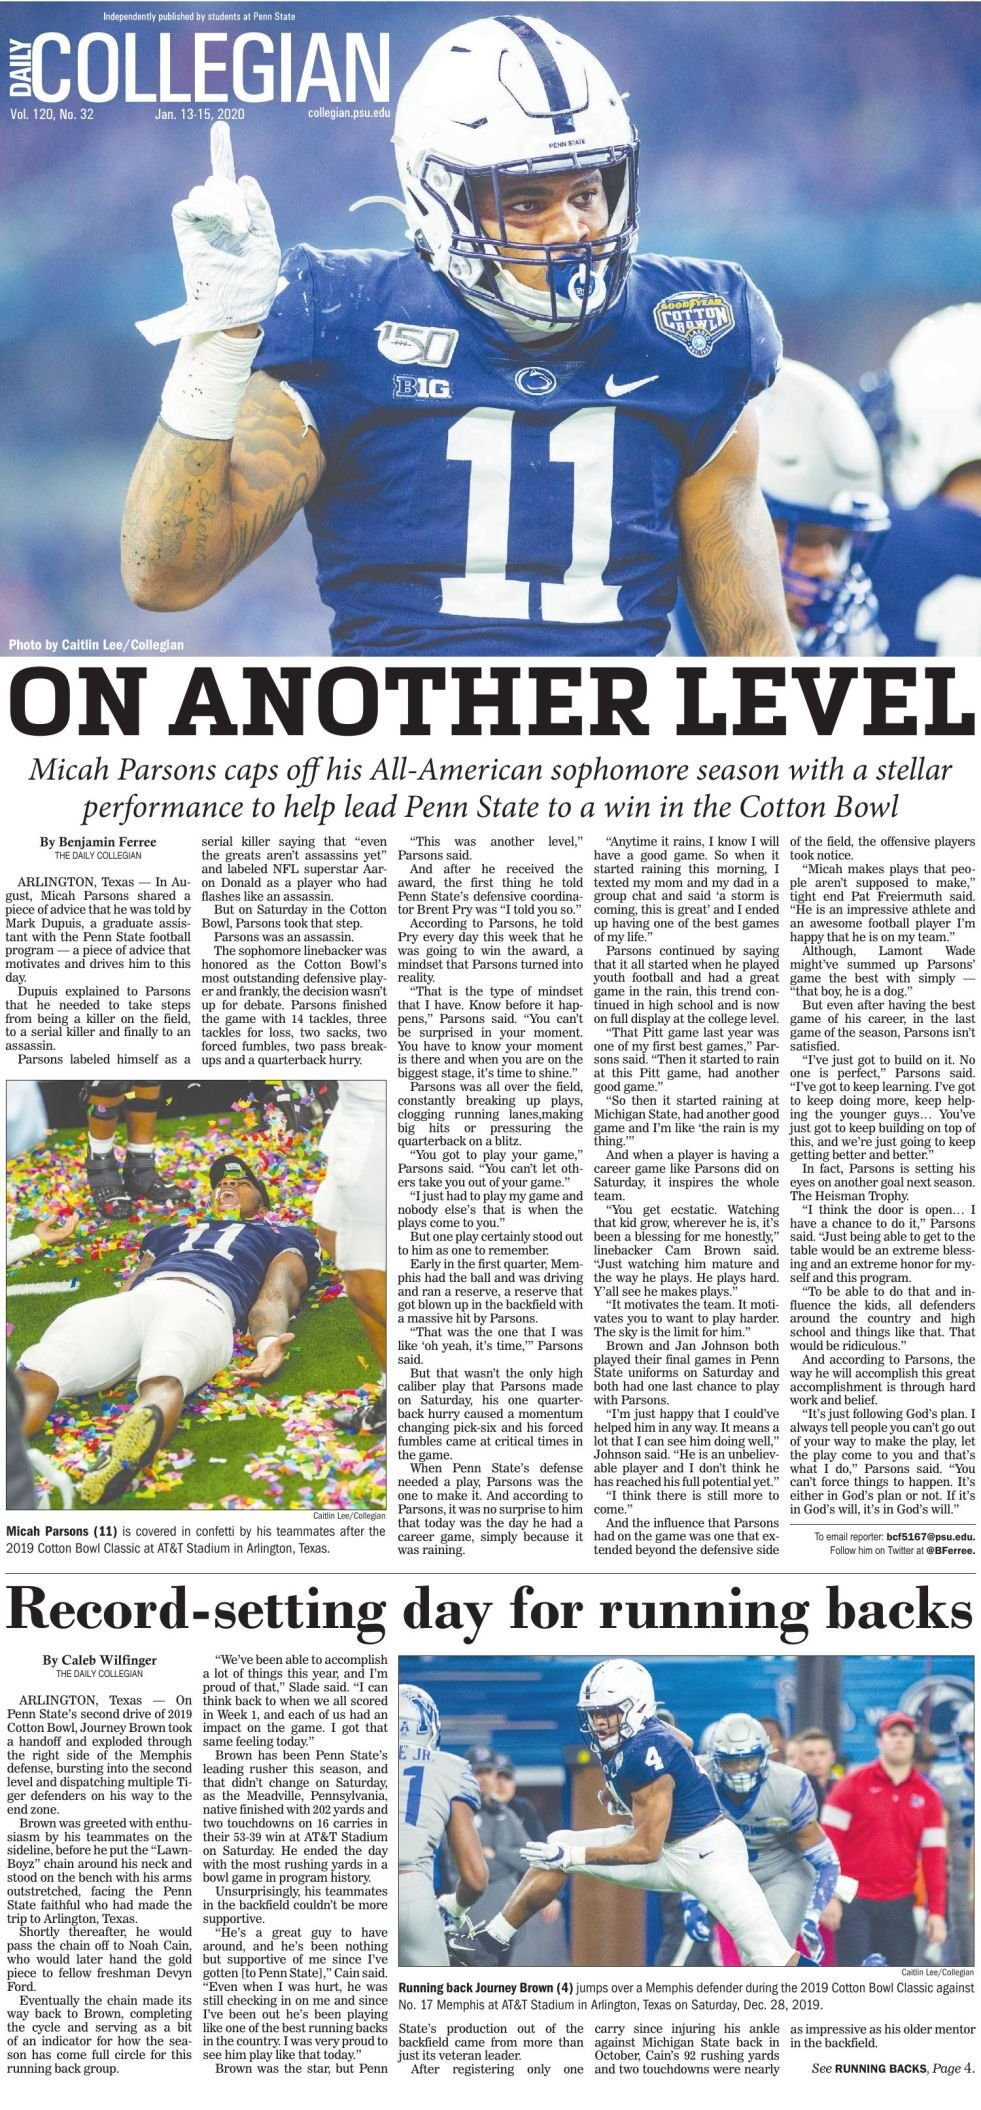 The Daily Collegian for Jan. 13, 2020